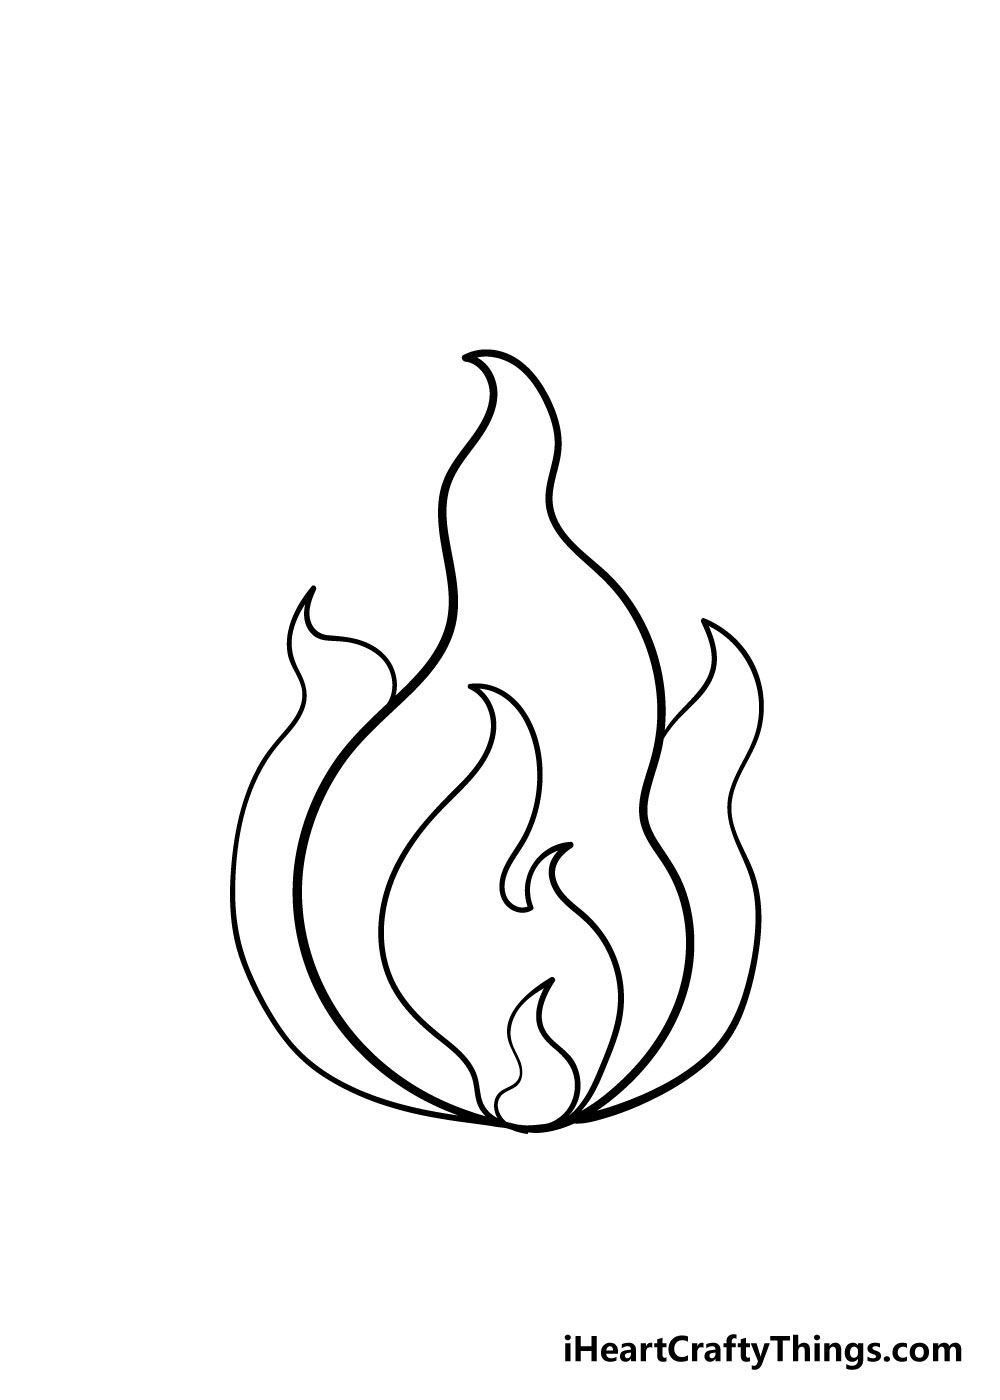 fire drawing step 4